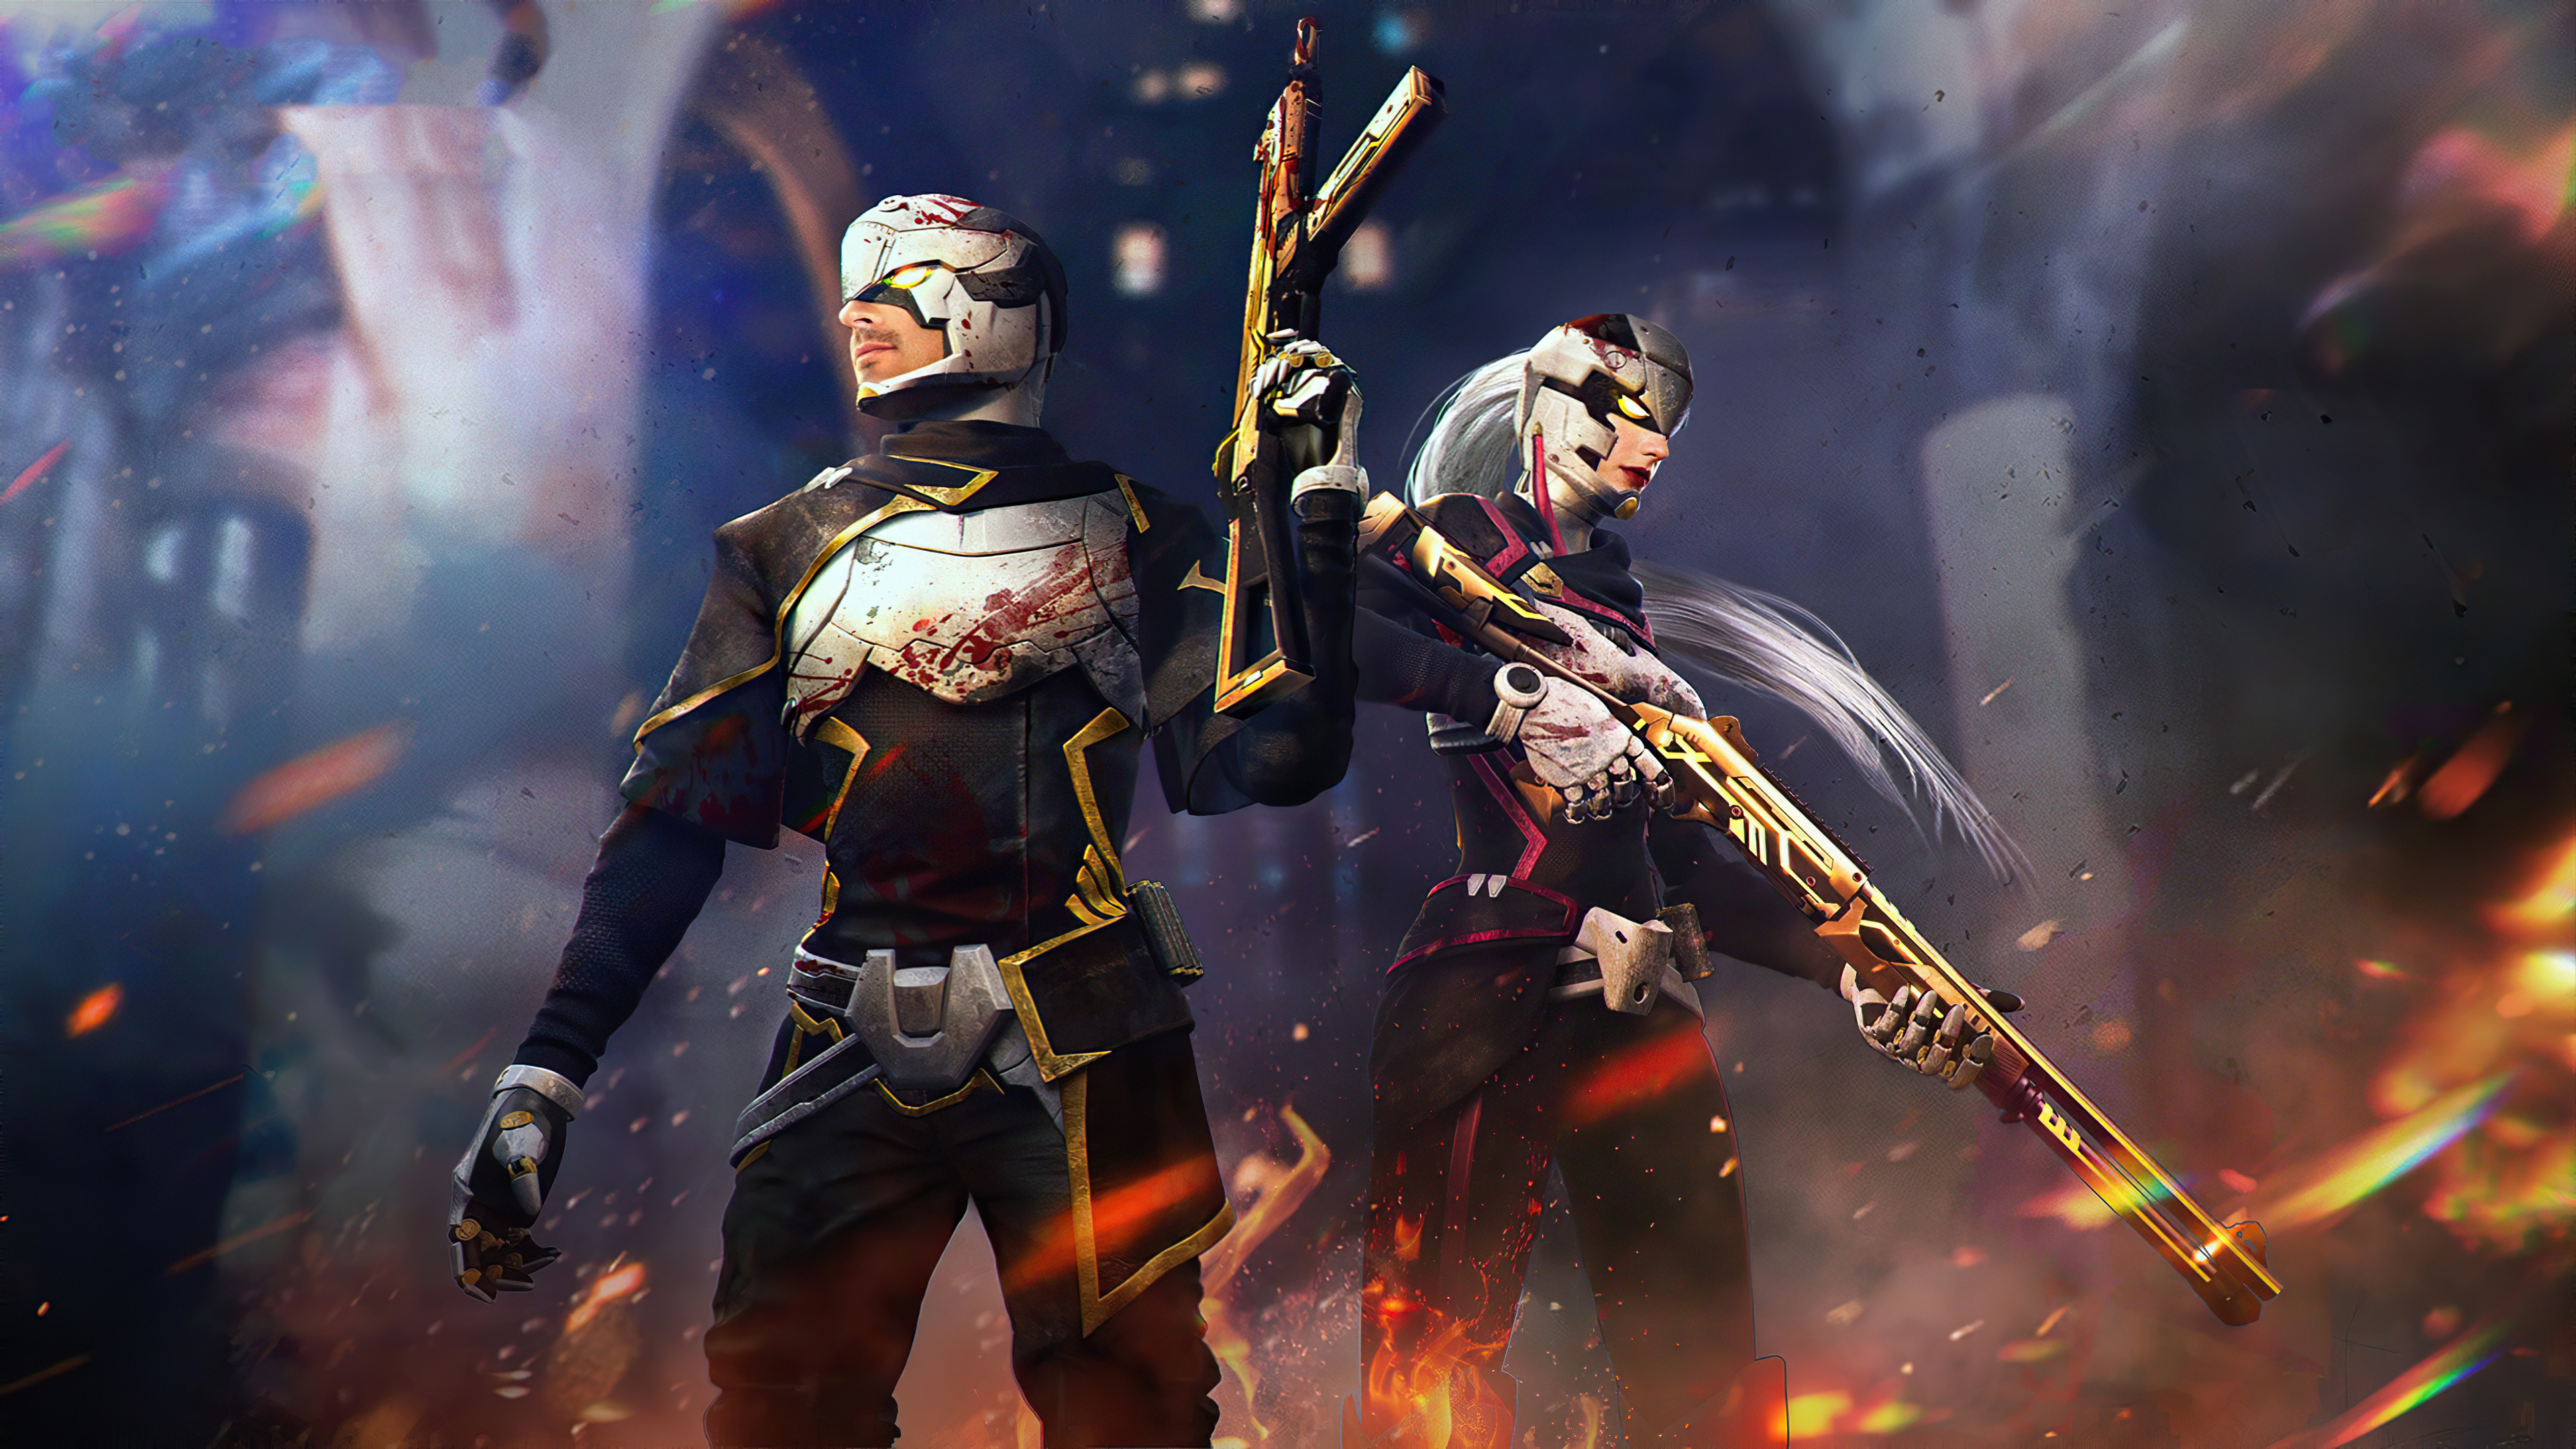 Garena Free Fire 2020 Wallpaper Hd Games 4k Wallpapers Images Photos And Background